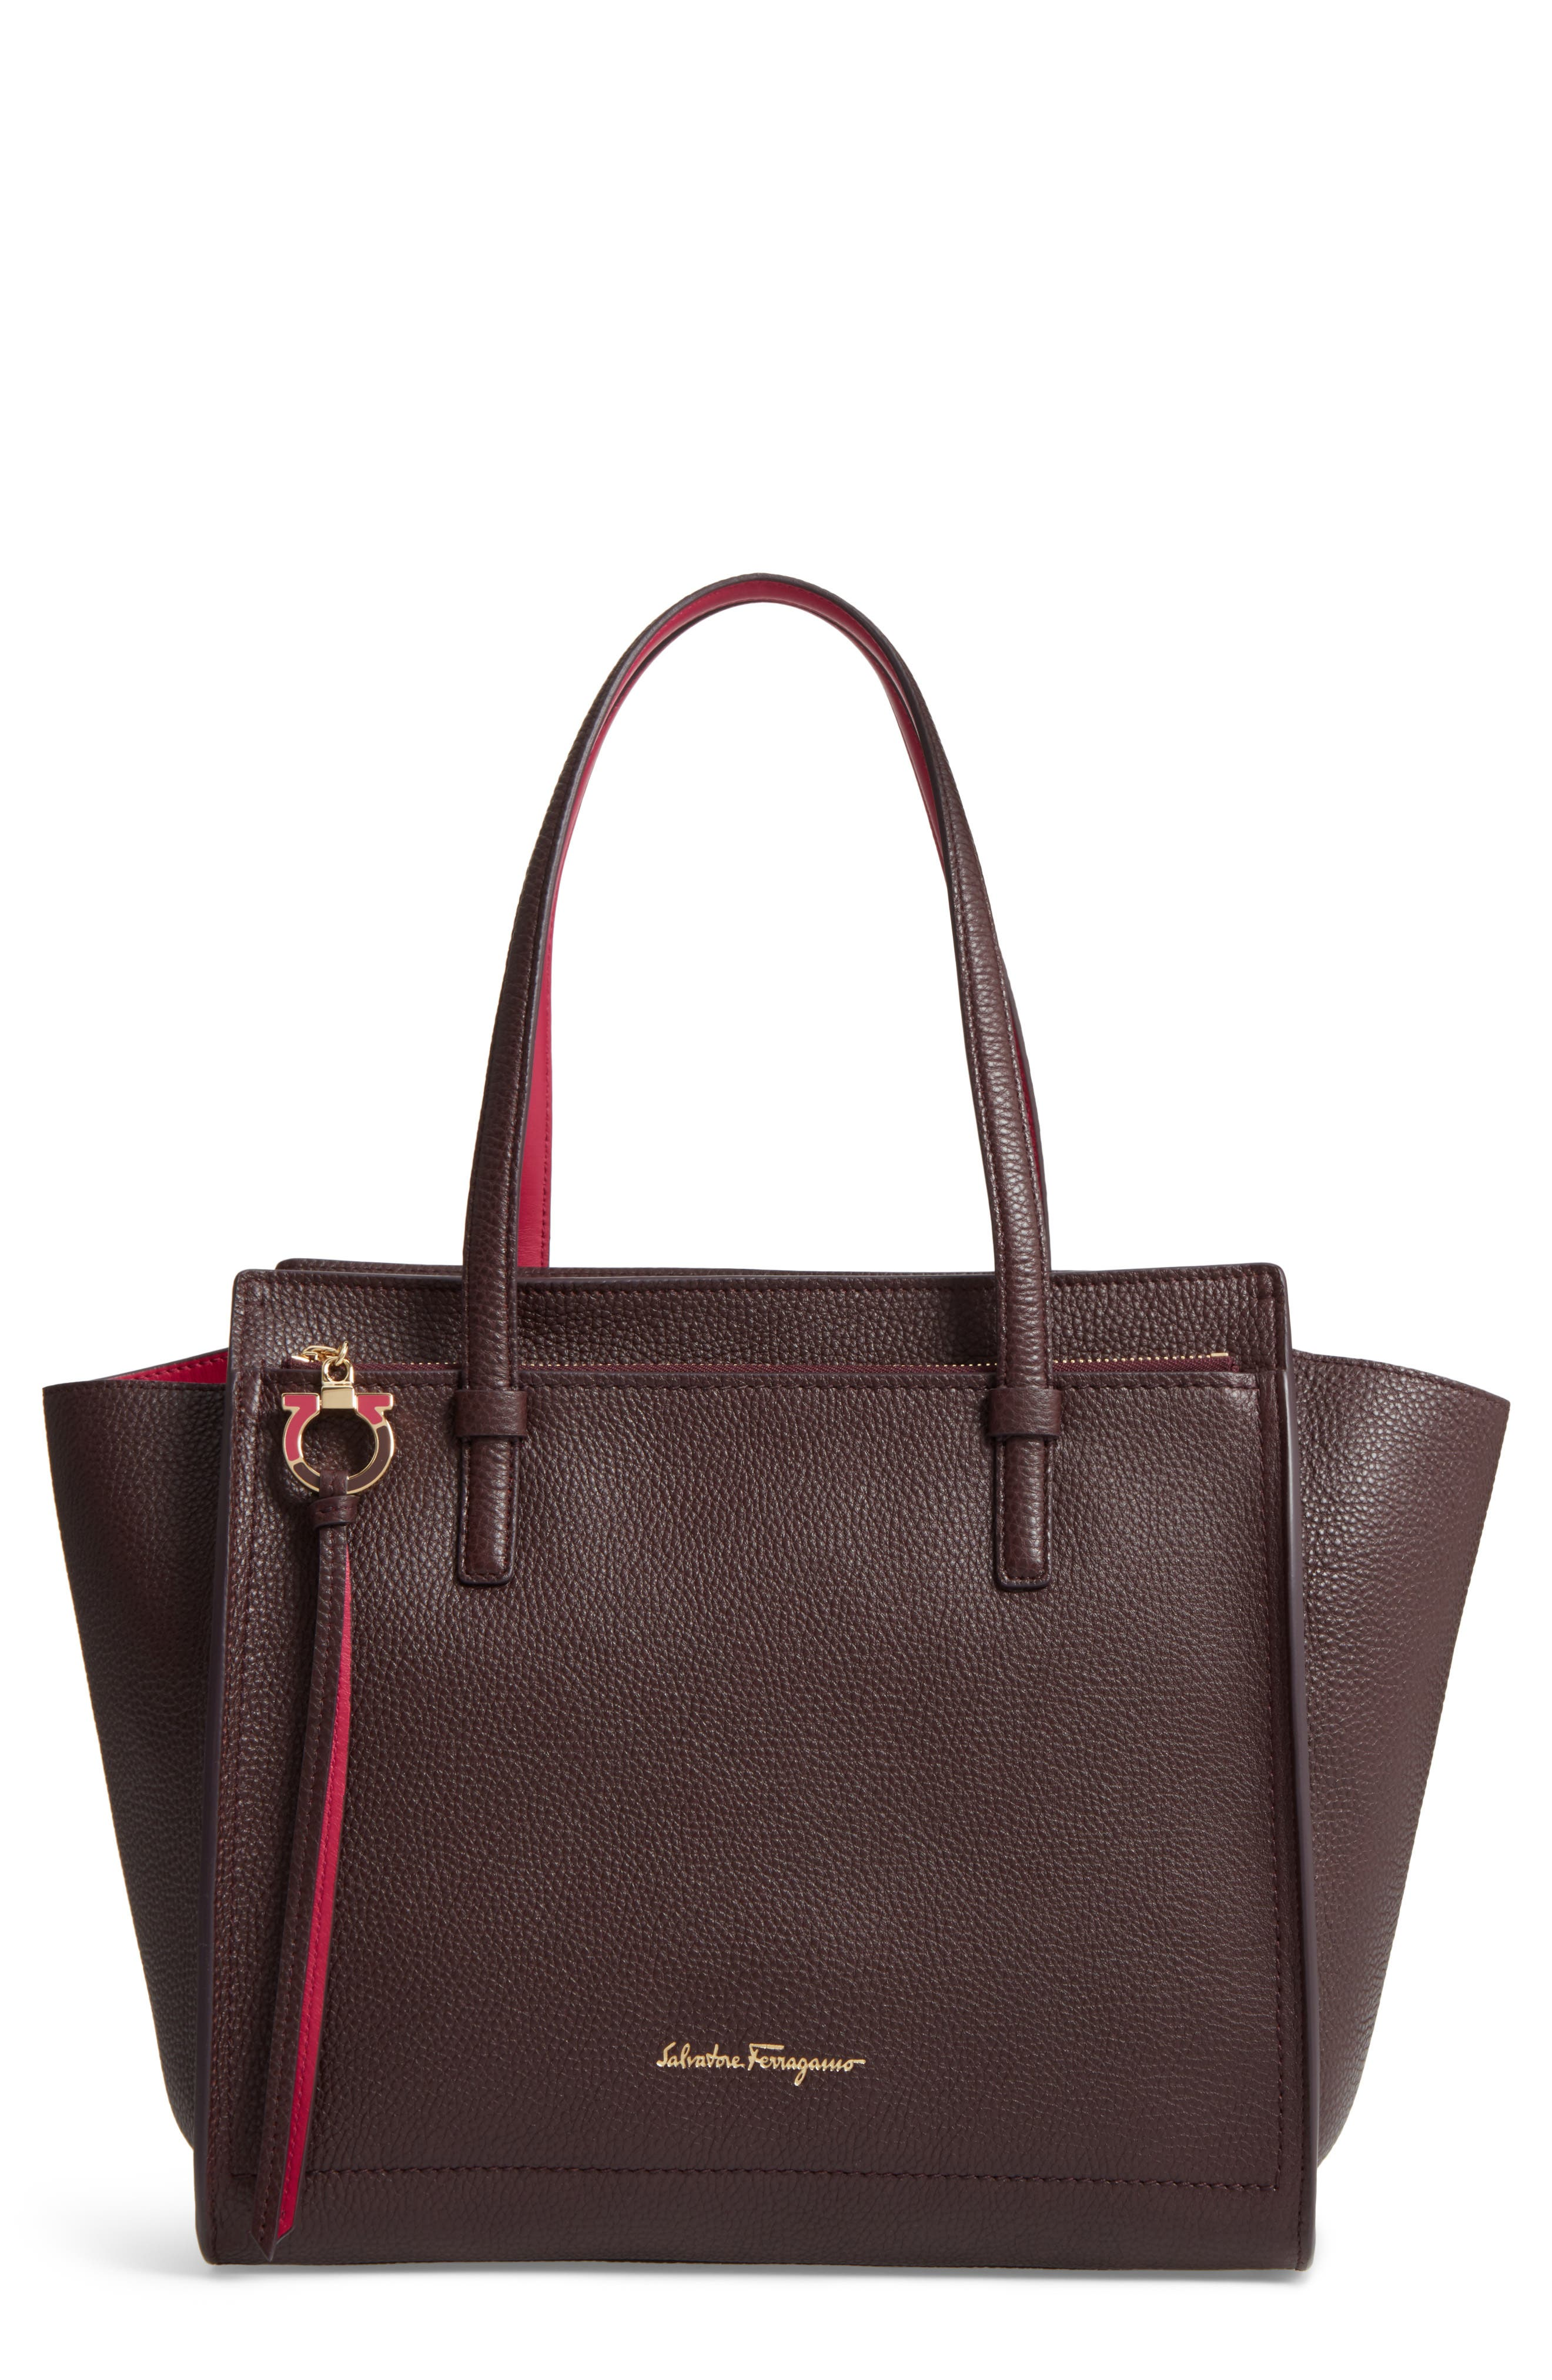 Salvatore Ferragamo Medium Bicolor Leather Tote